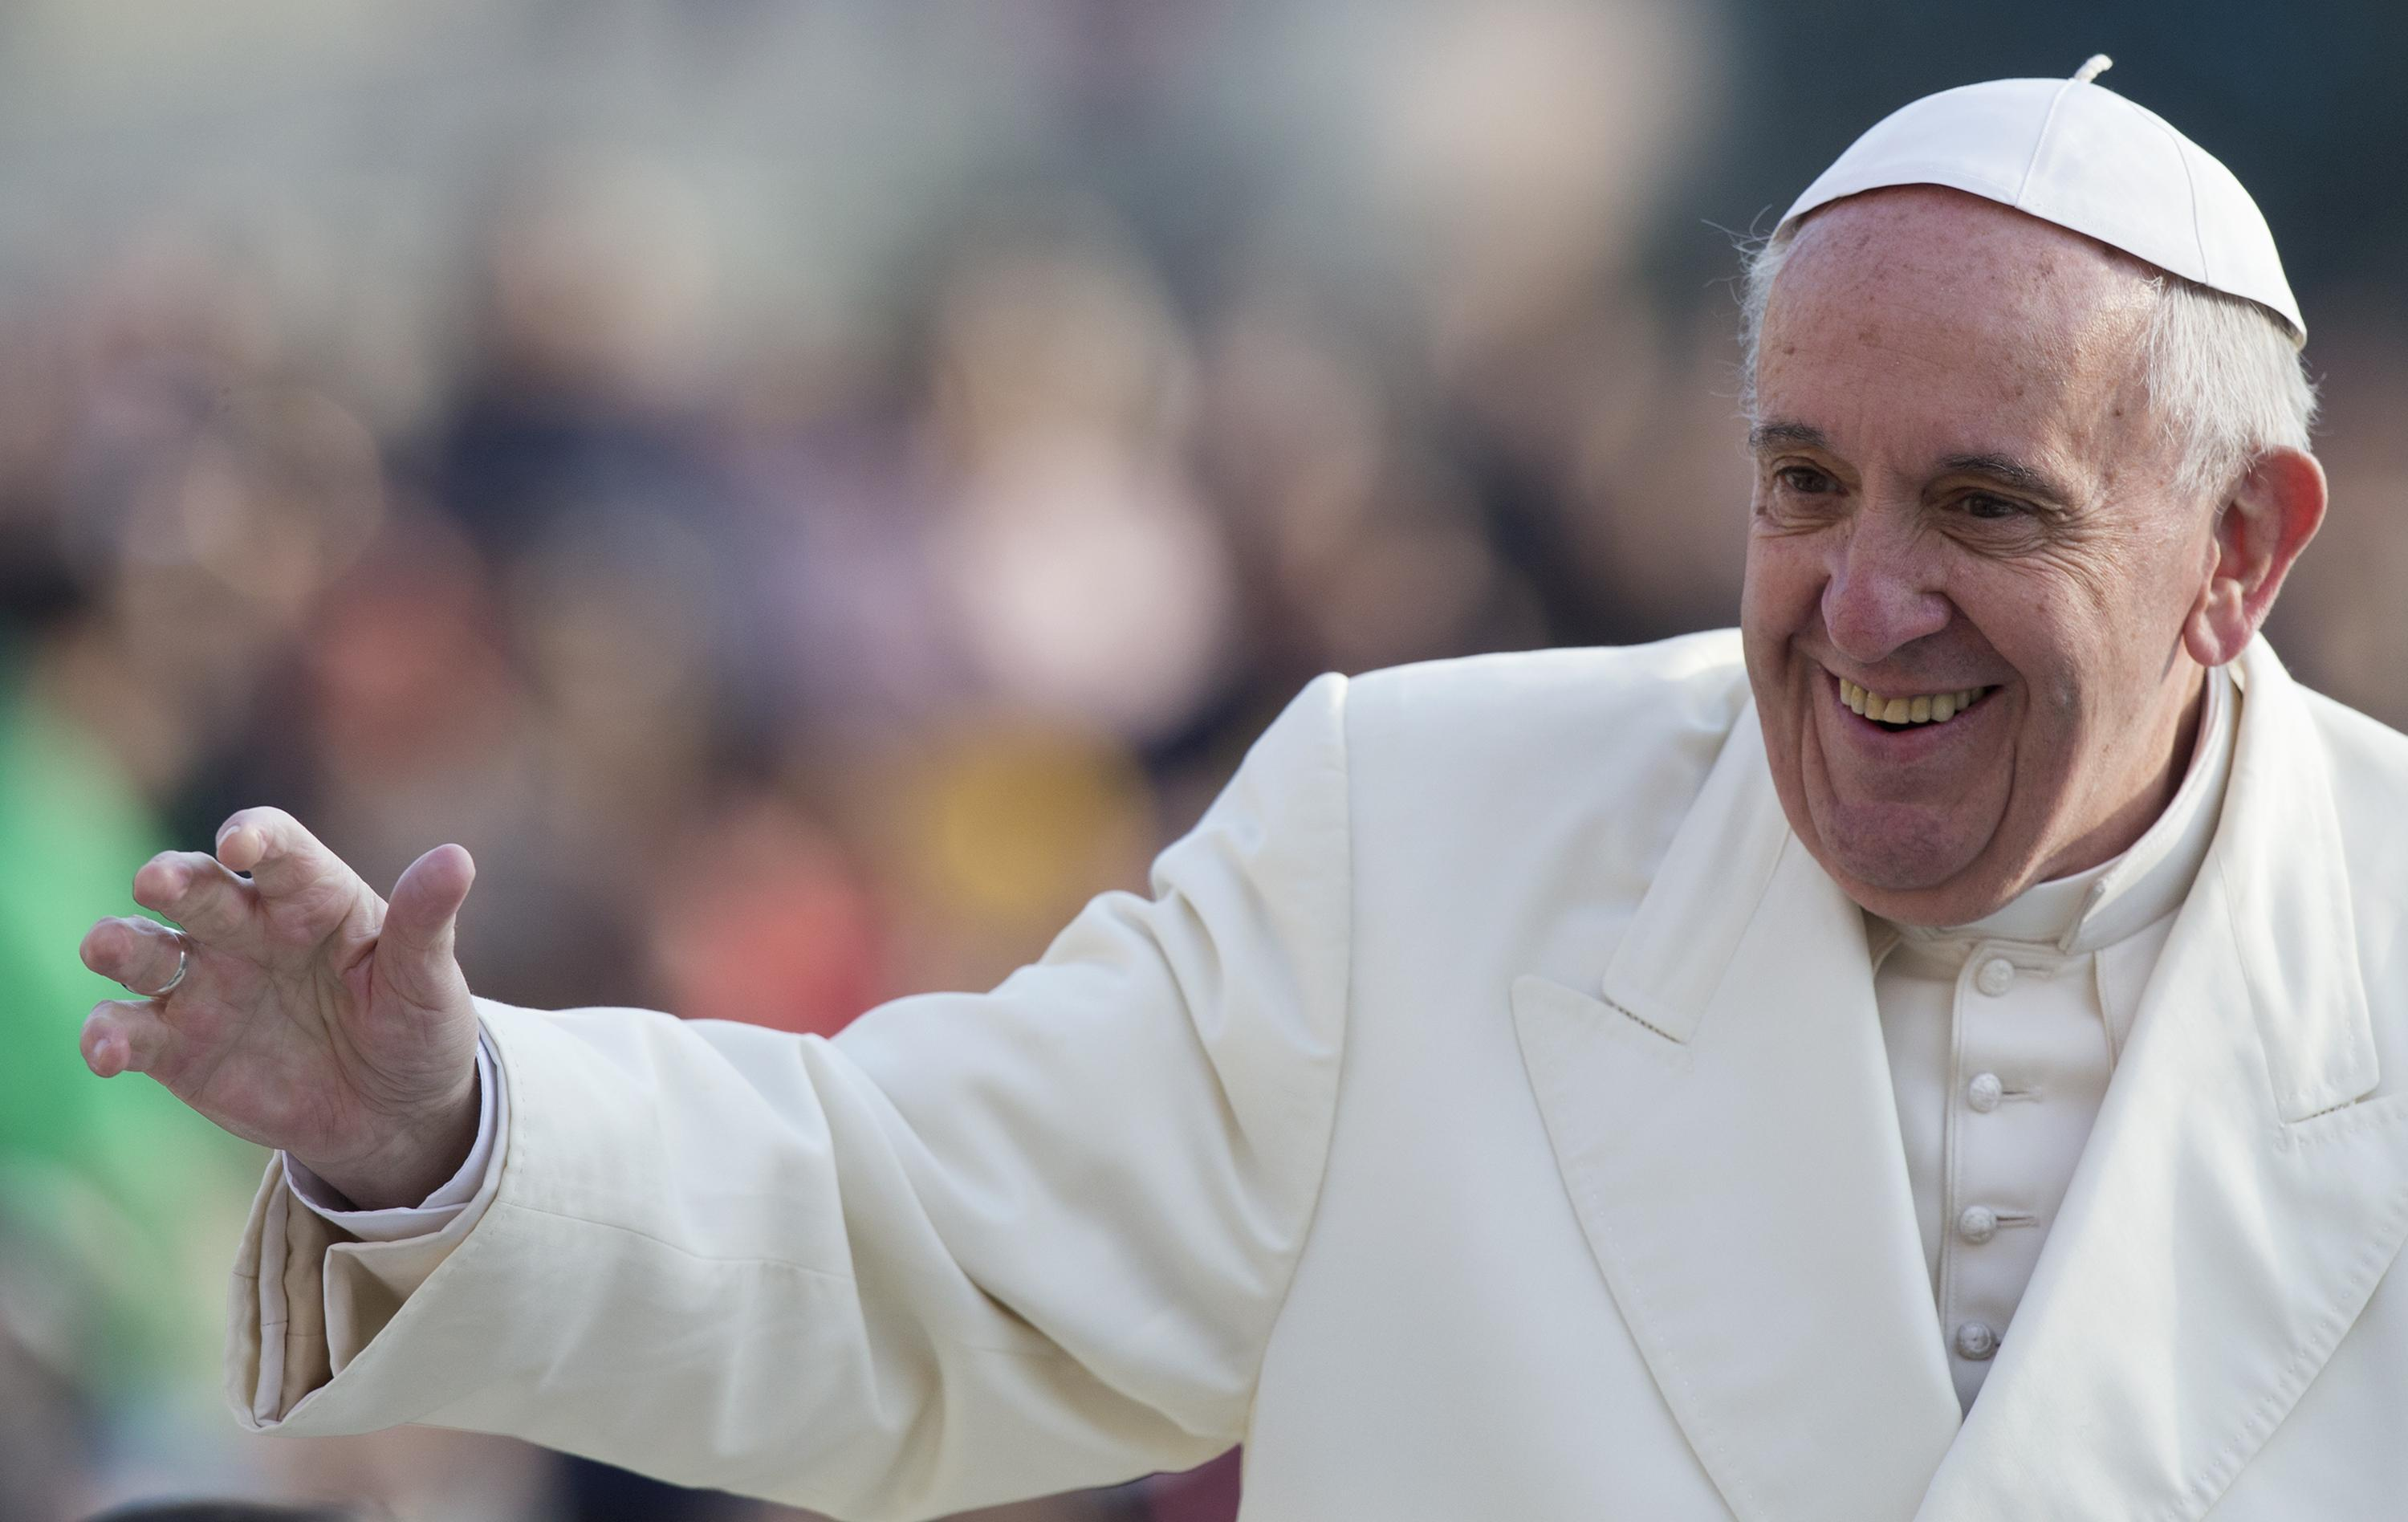 Pope Francis greets faithful at the beginning of the General audience on Wednesday 9th of December 2015